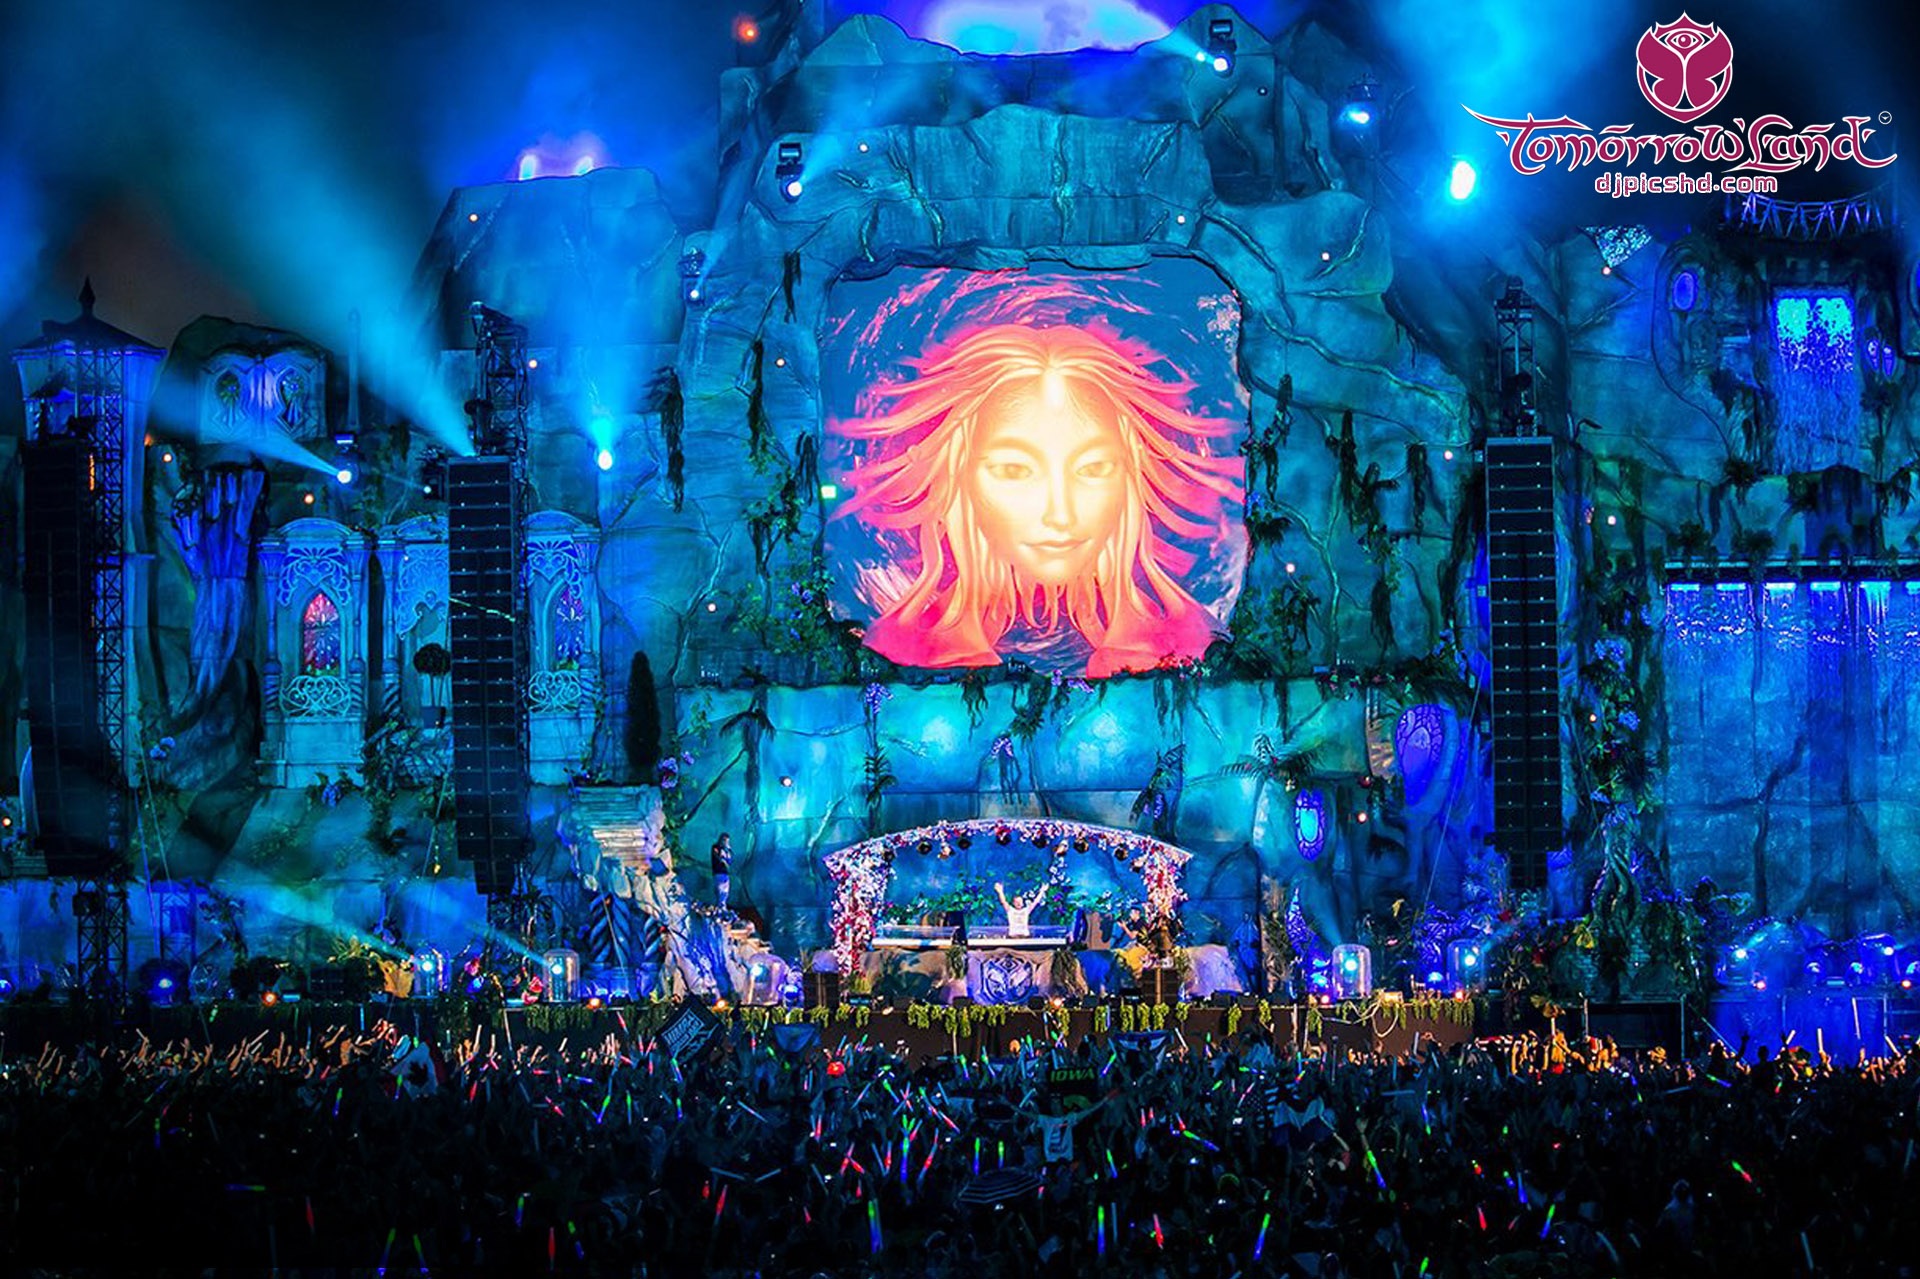 What is Tomorrowland? ...